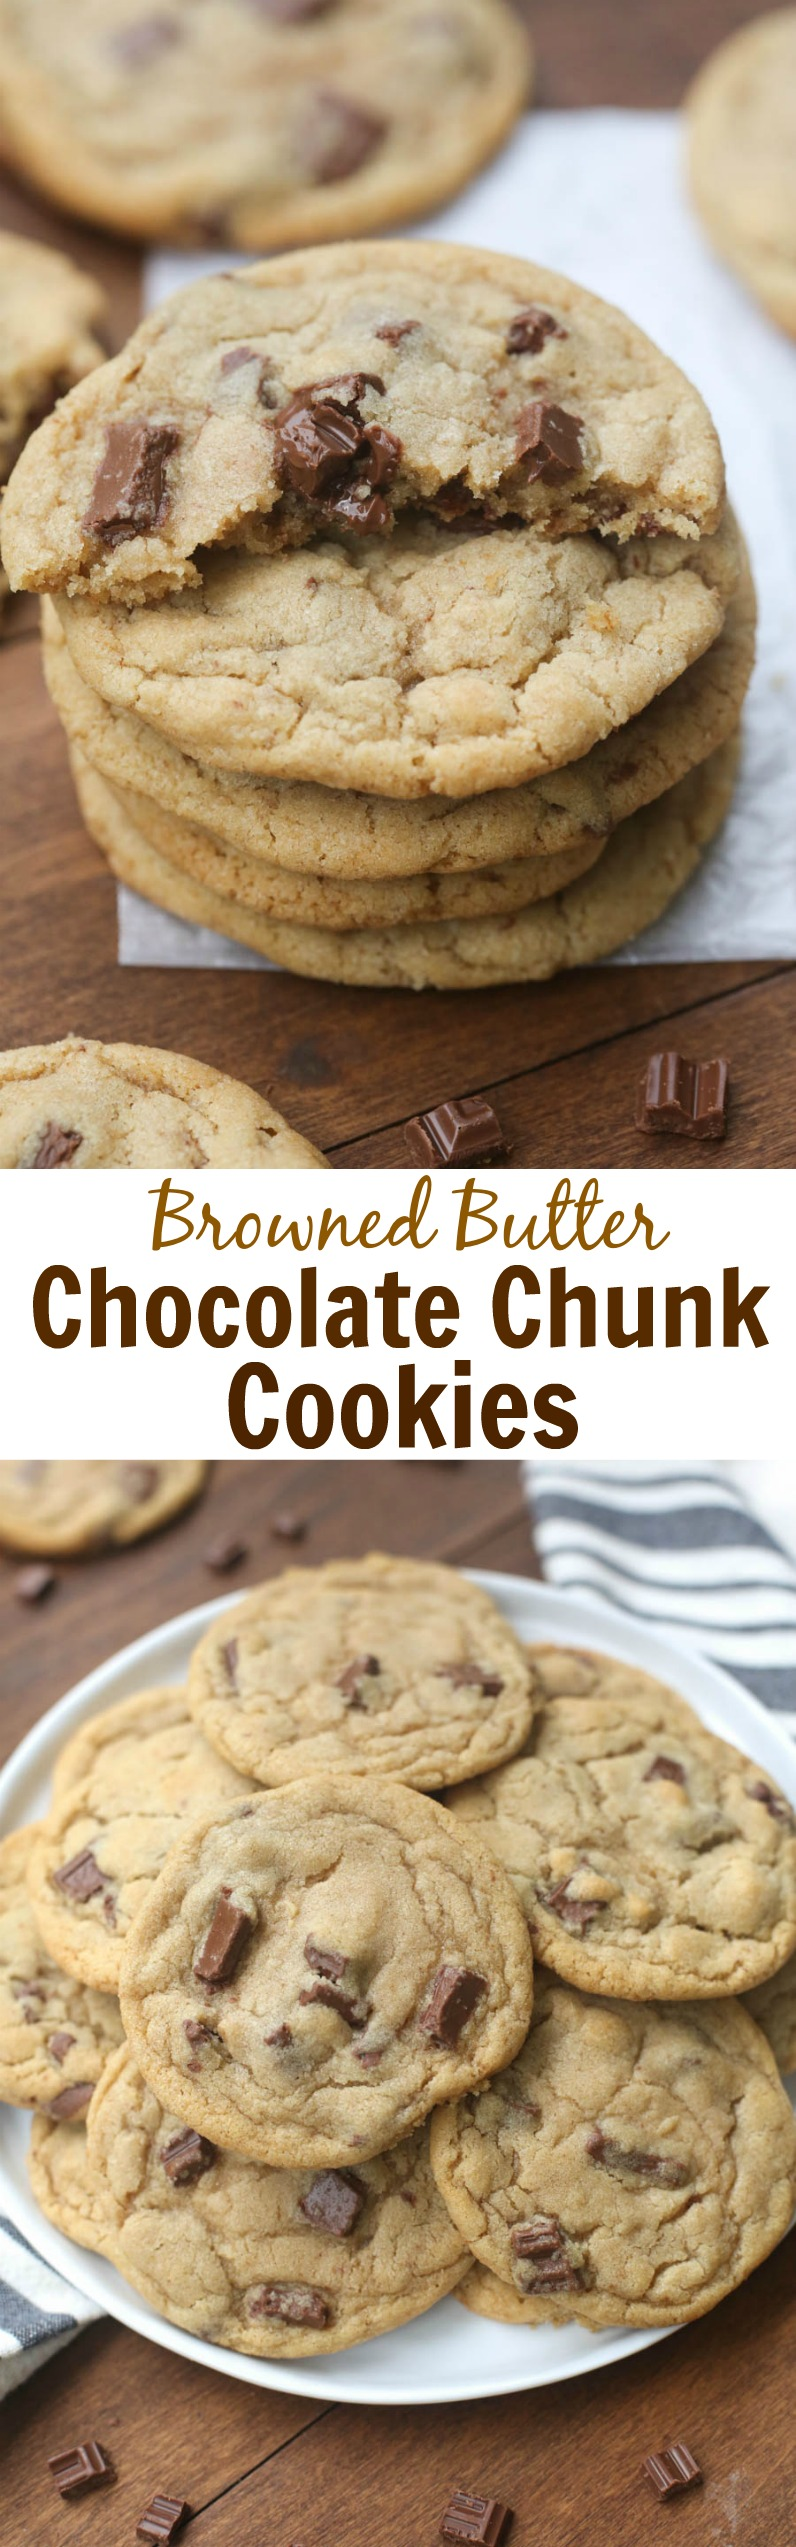 Browned Butter Chocolate Chunk Cookies. The BEST chocolate chip cookies ever!! | Tastes Better From Scratch